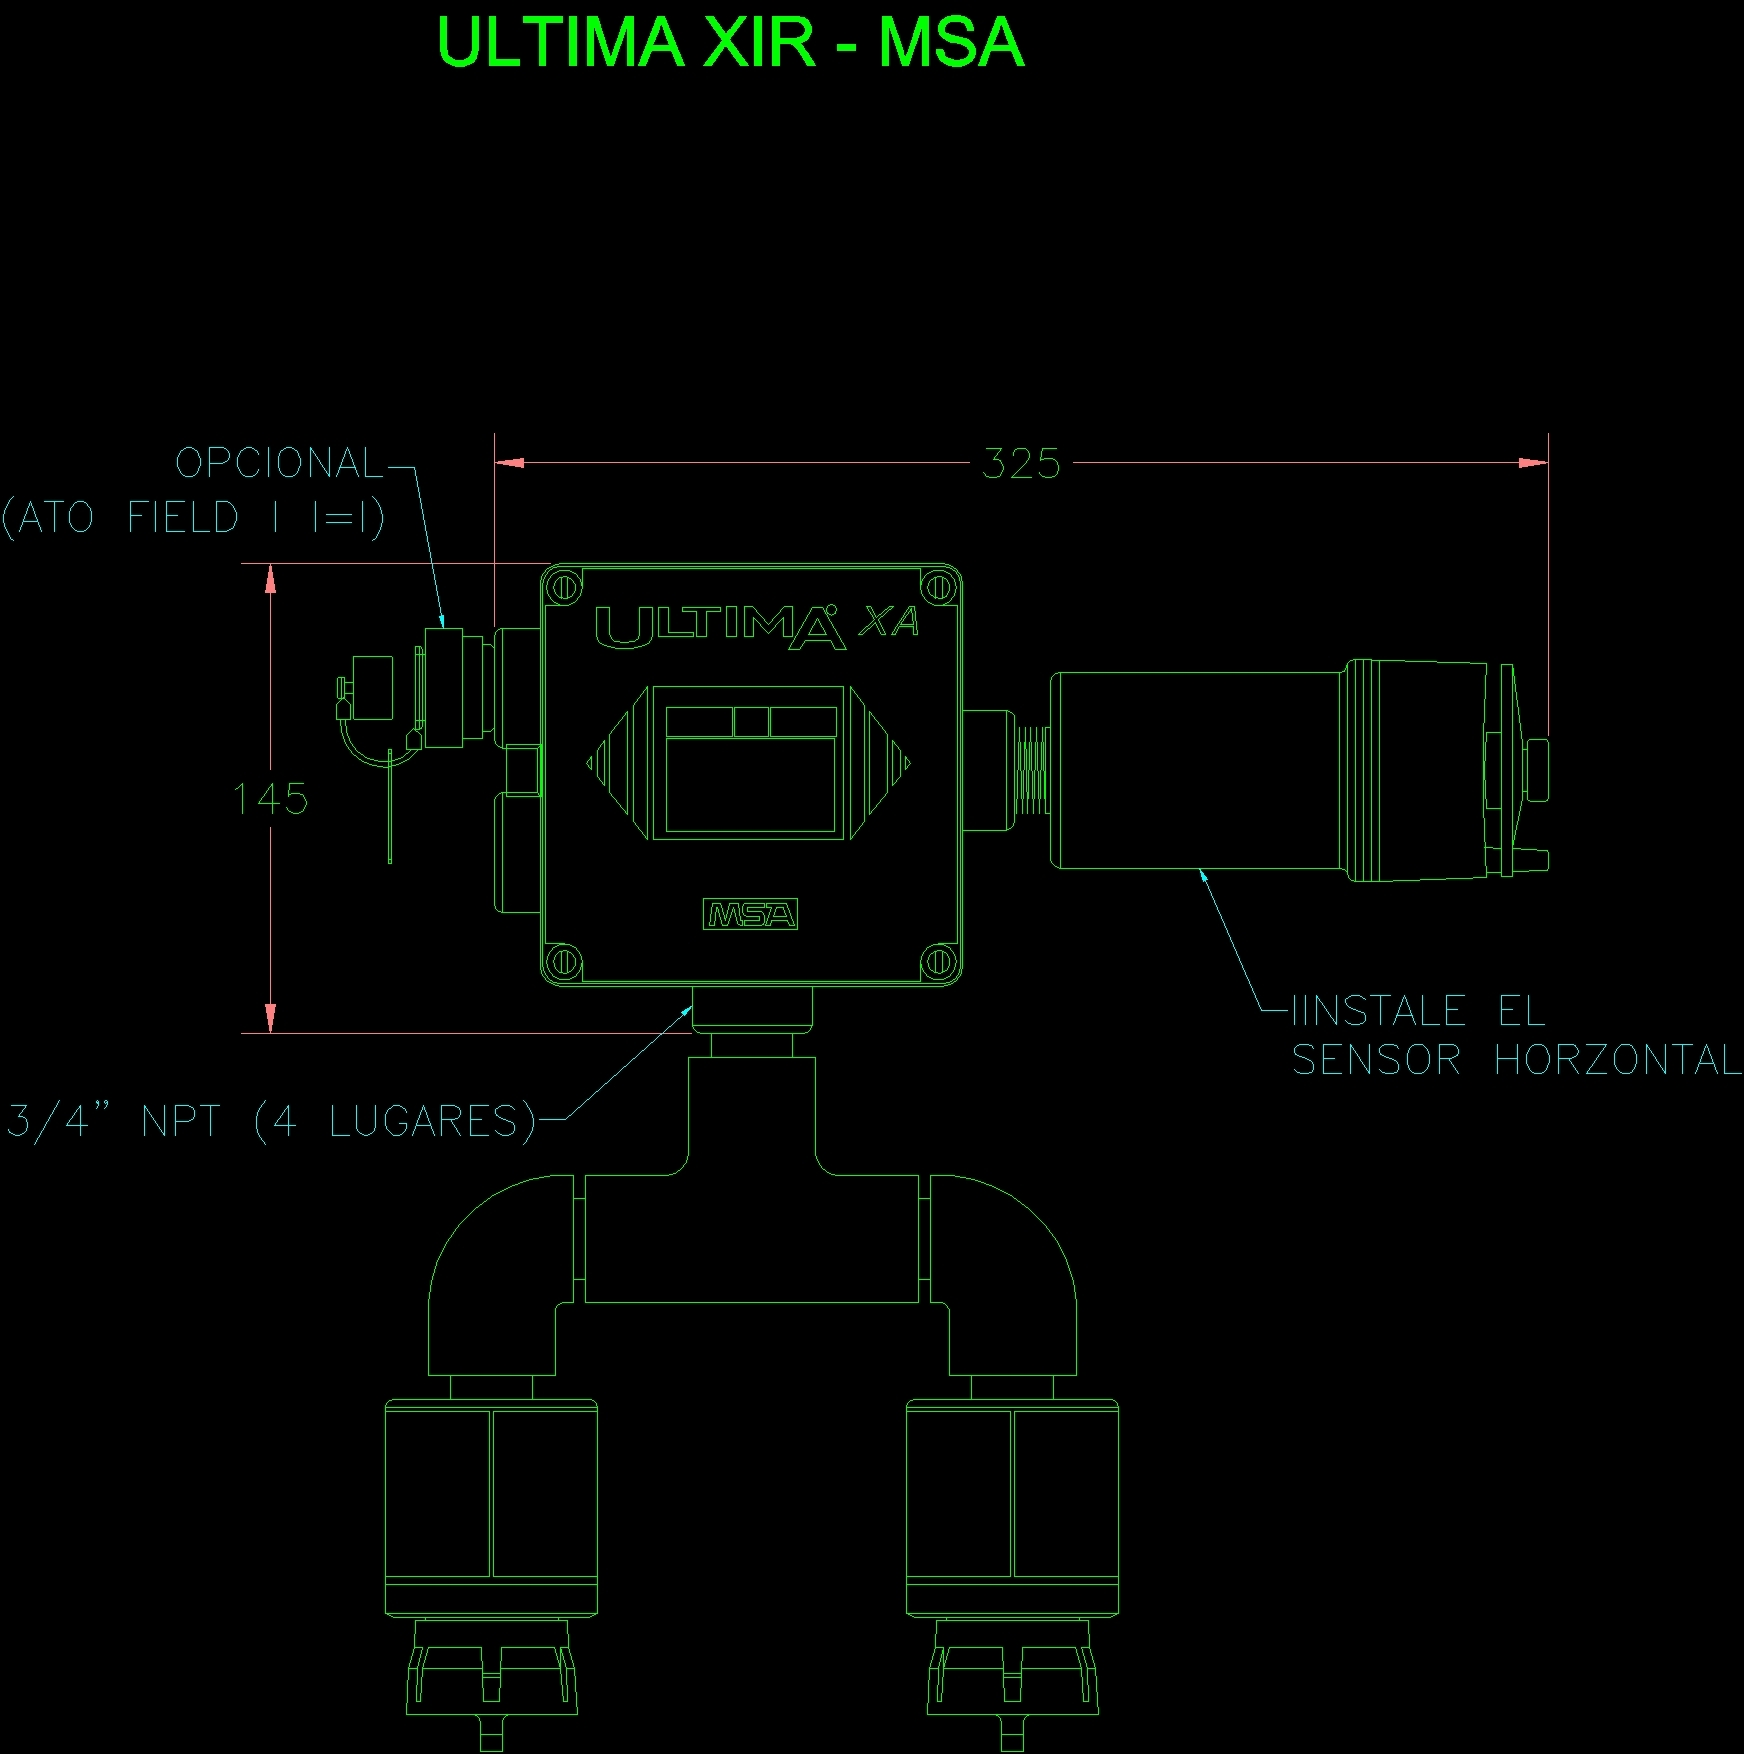 Ultima Xir Msa, Infrared Gas Monitor DWG Block For AutoCAD